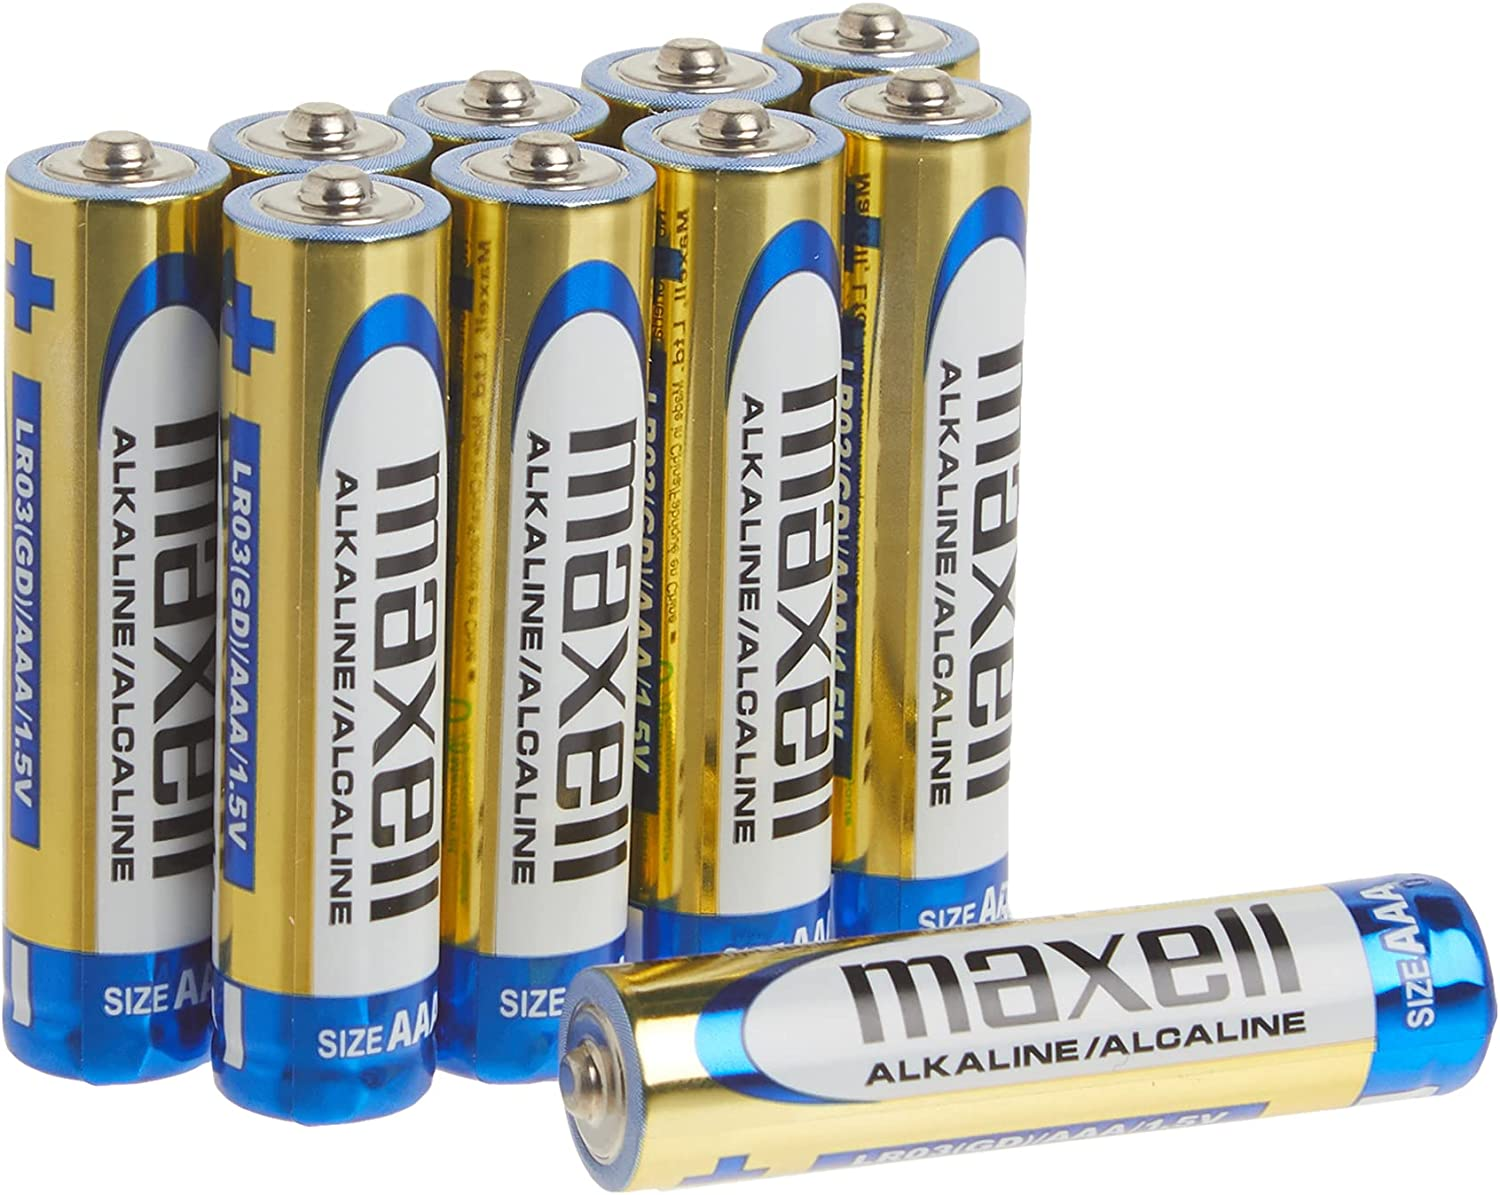 Maxell 723810 Ready-to-go Long Lasting and Reliable Alkaline Battery AAA Cell 10-Pack